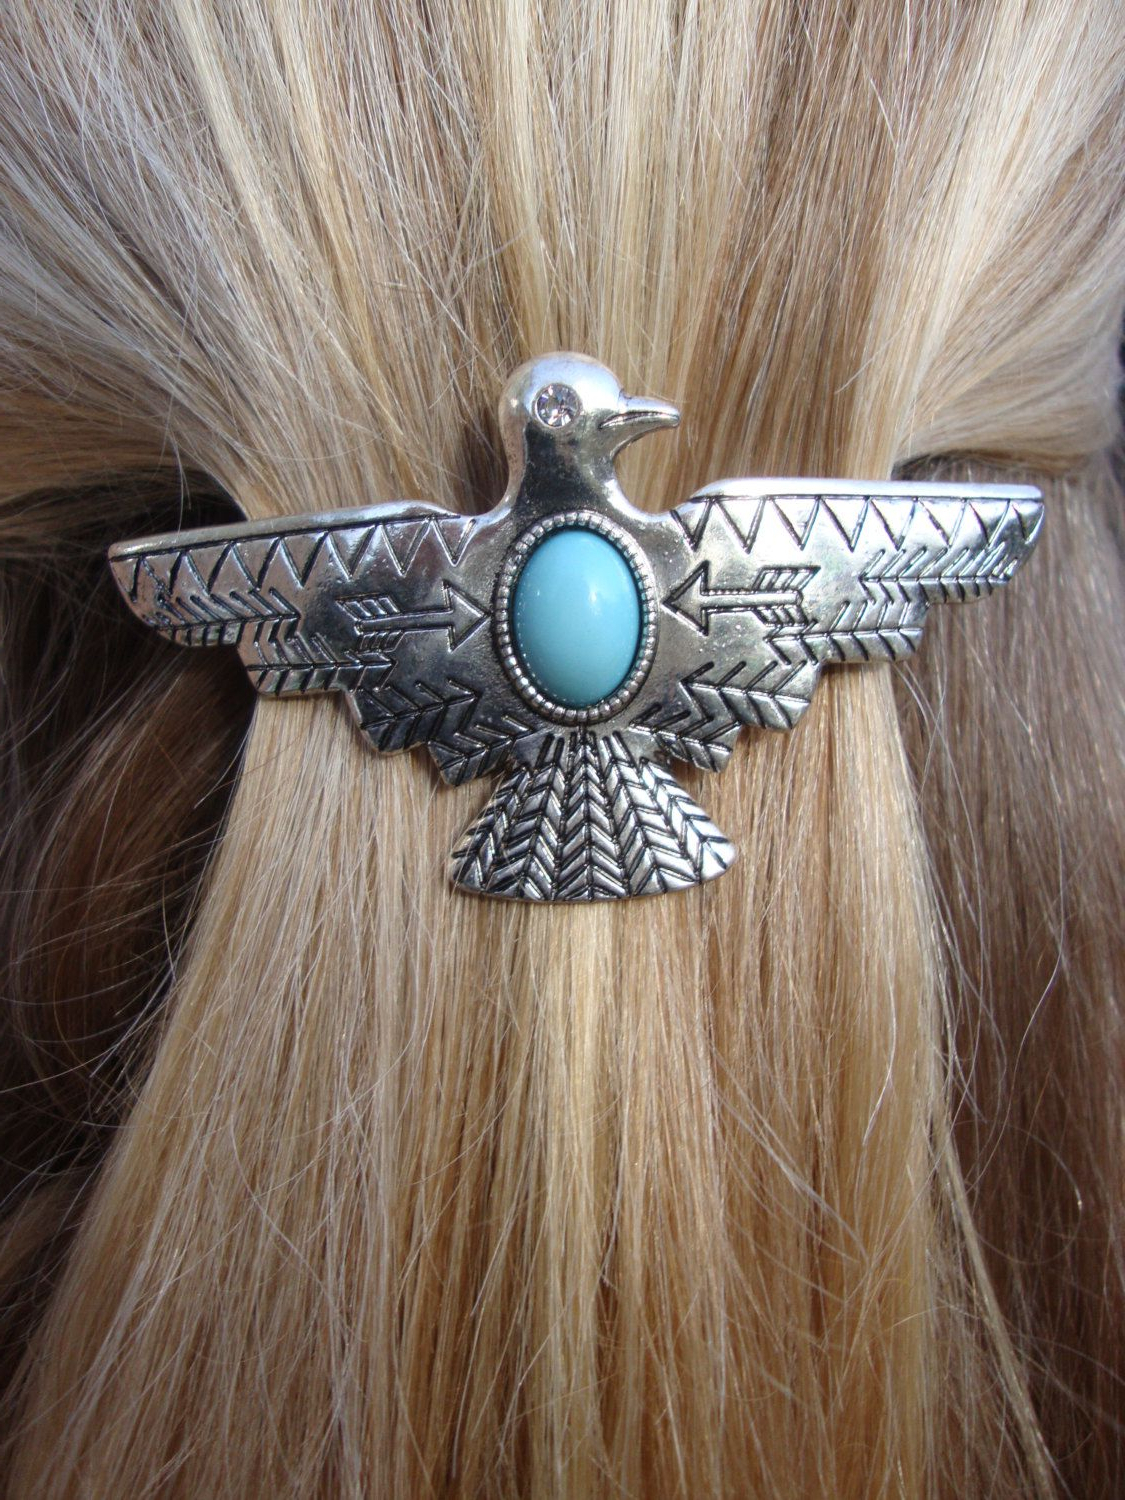 Silver Tribal Thunderbird Hair Barrette Hair Accessory Boho Chic Throughout Recent Graded Ponytail Hairstyles With A Butterfly Clasp (View 17 of 20)